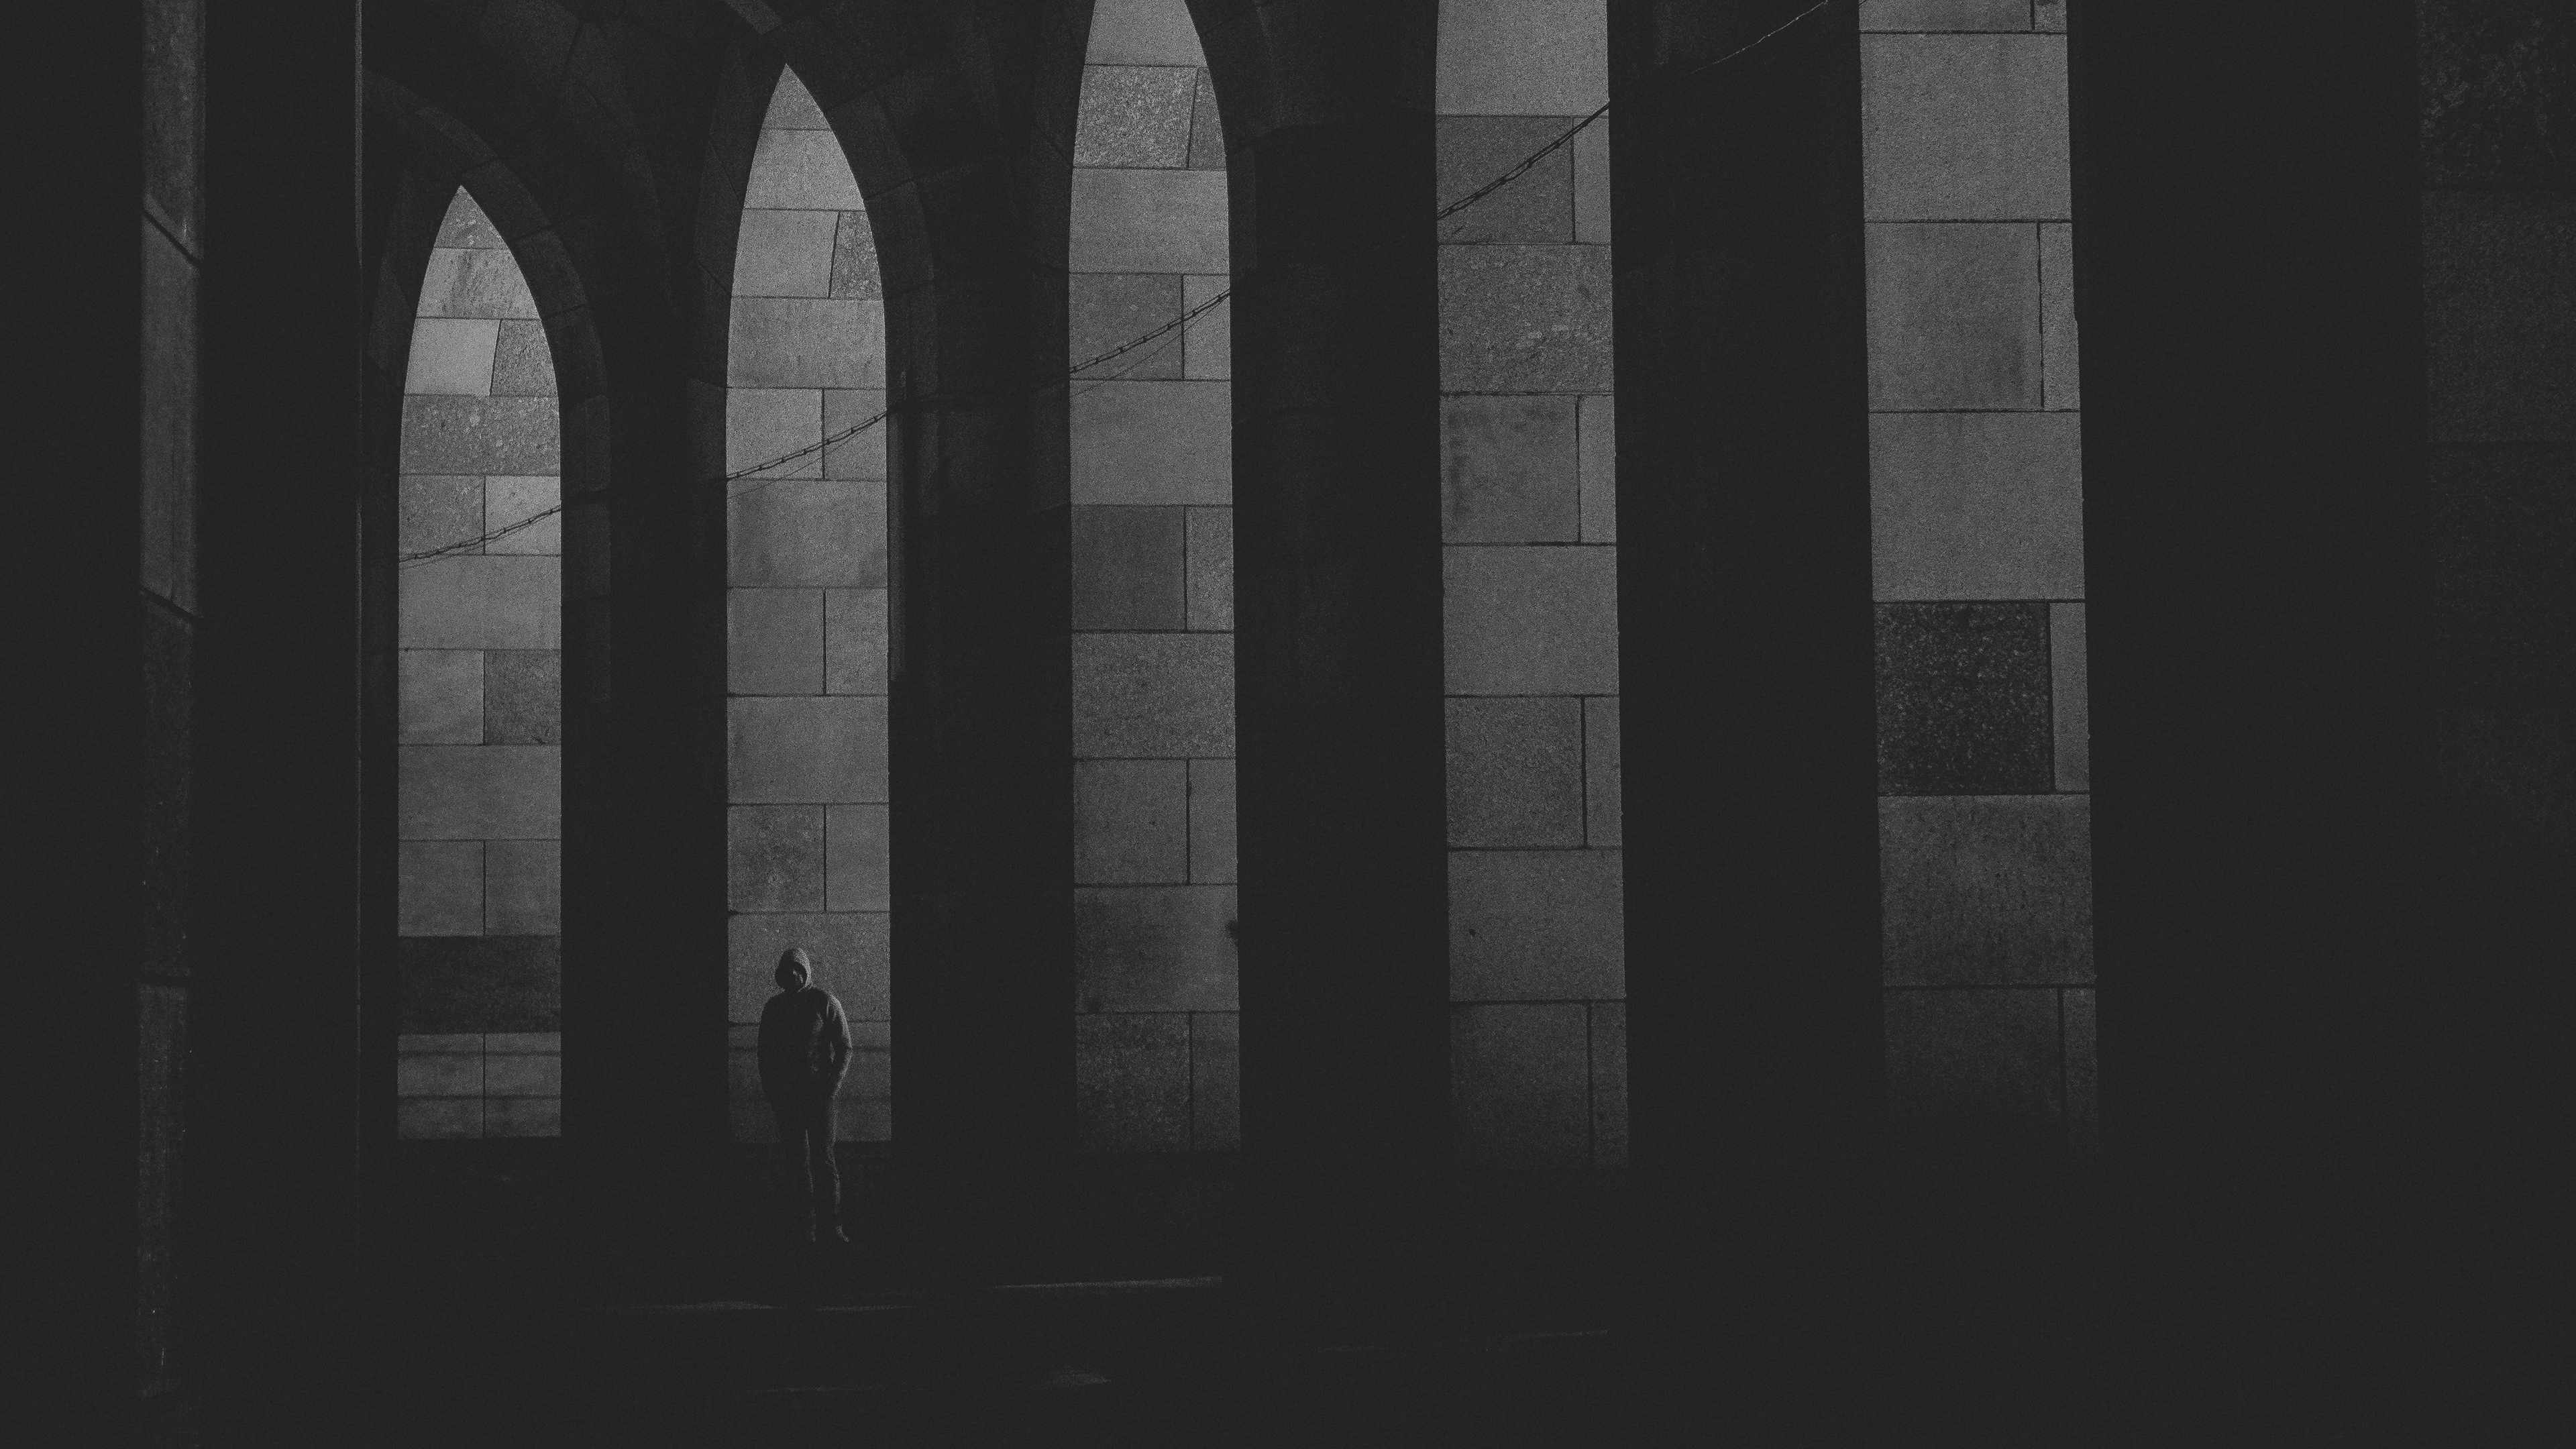 arches lonely bw loneliness 4k 1540575928 - arches, lonely, bw, loneliness 4k - Lonely, bw, arches